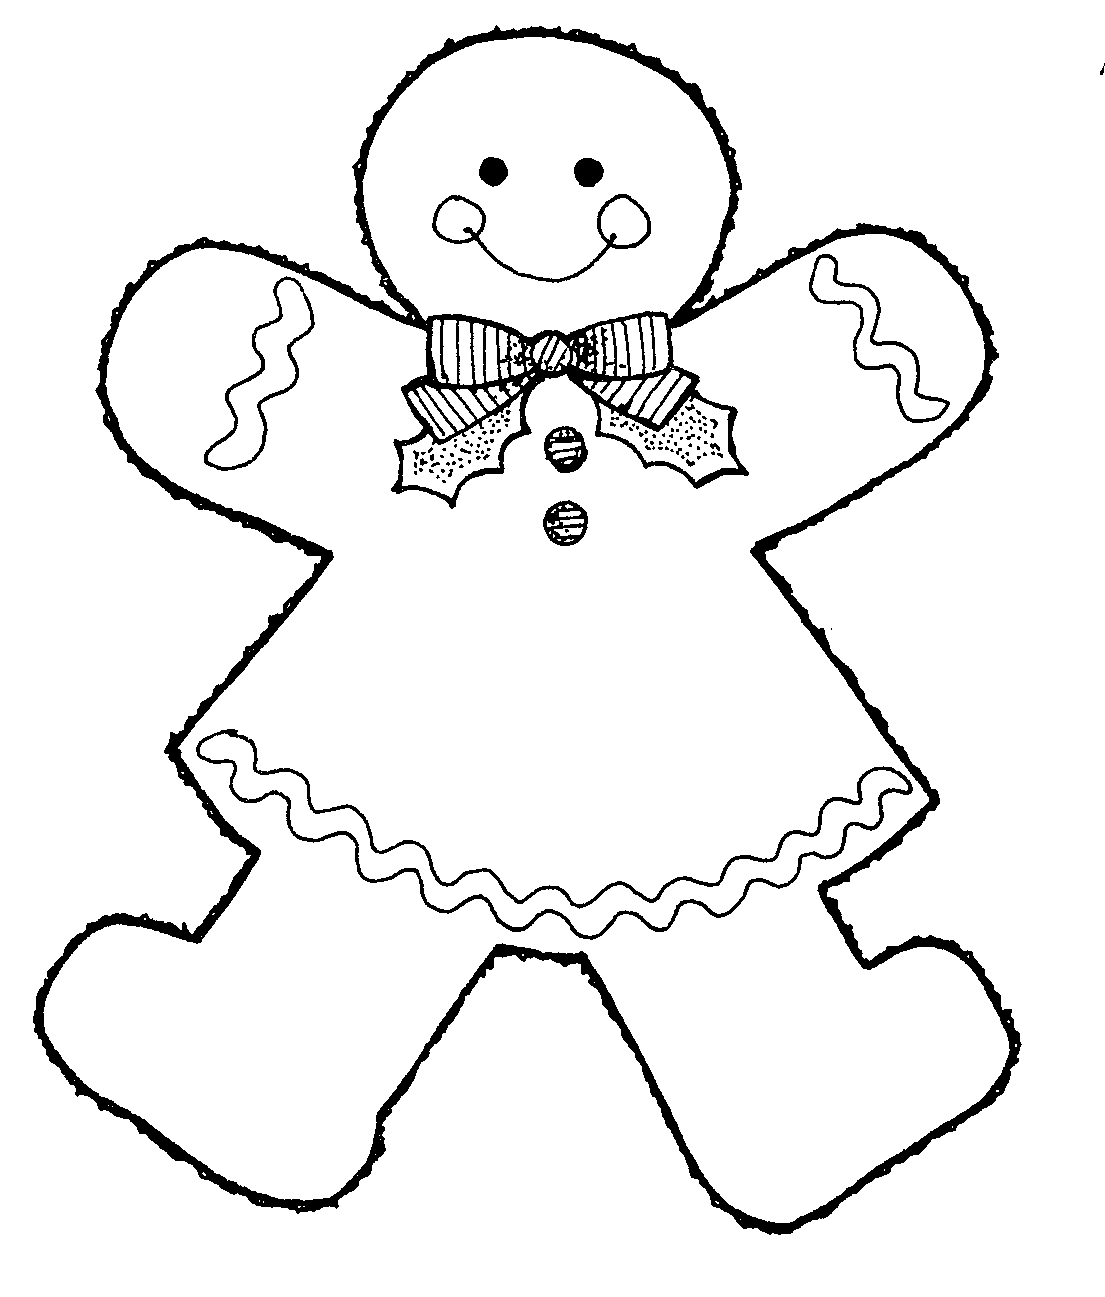 Gingerbread Man Clip Art Black And White.